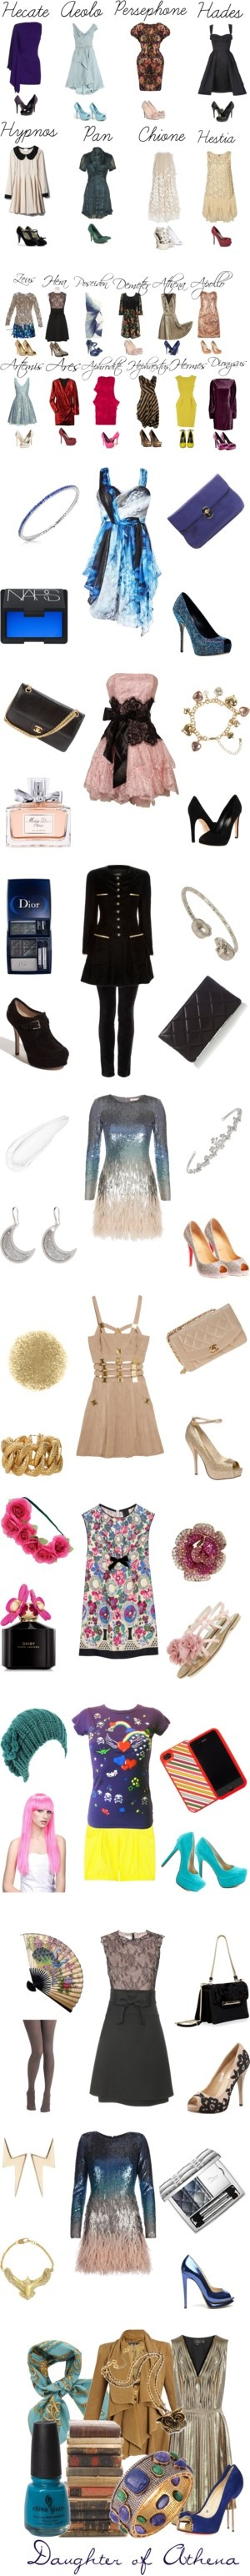 """The Percy Jackson Series"" by johnlockers ❤ liked on Polyvore"